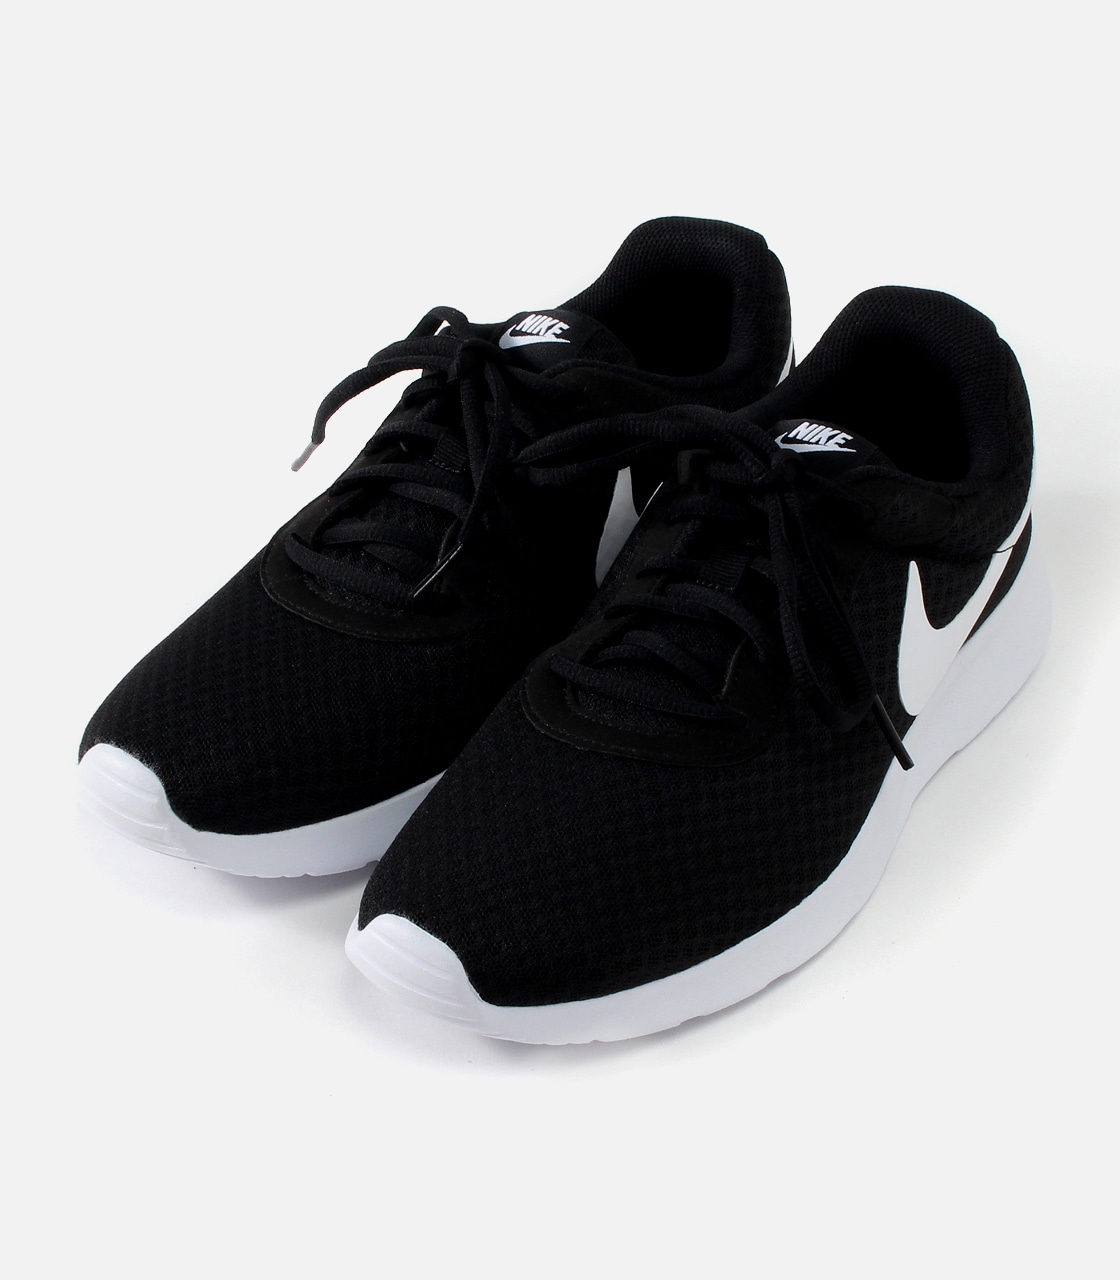 【AZUL BY MOUSSY】NIKE TANJUN 詳細画像 BLK 1